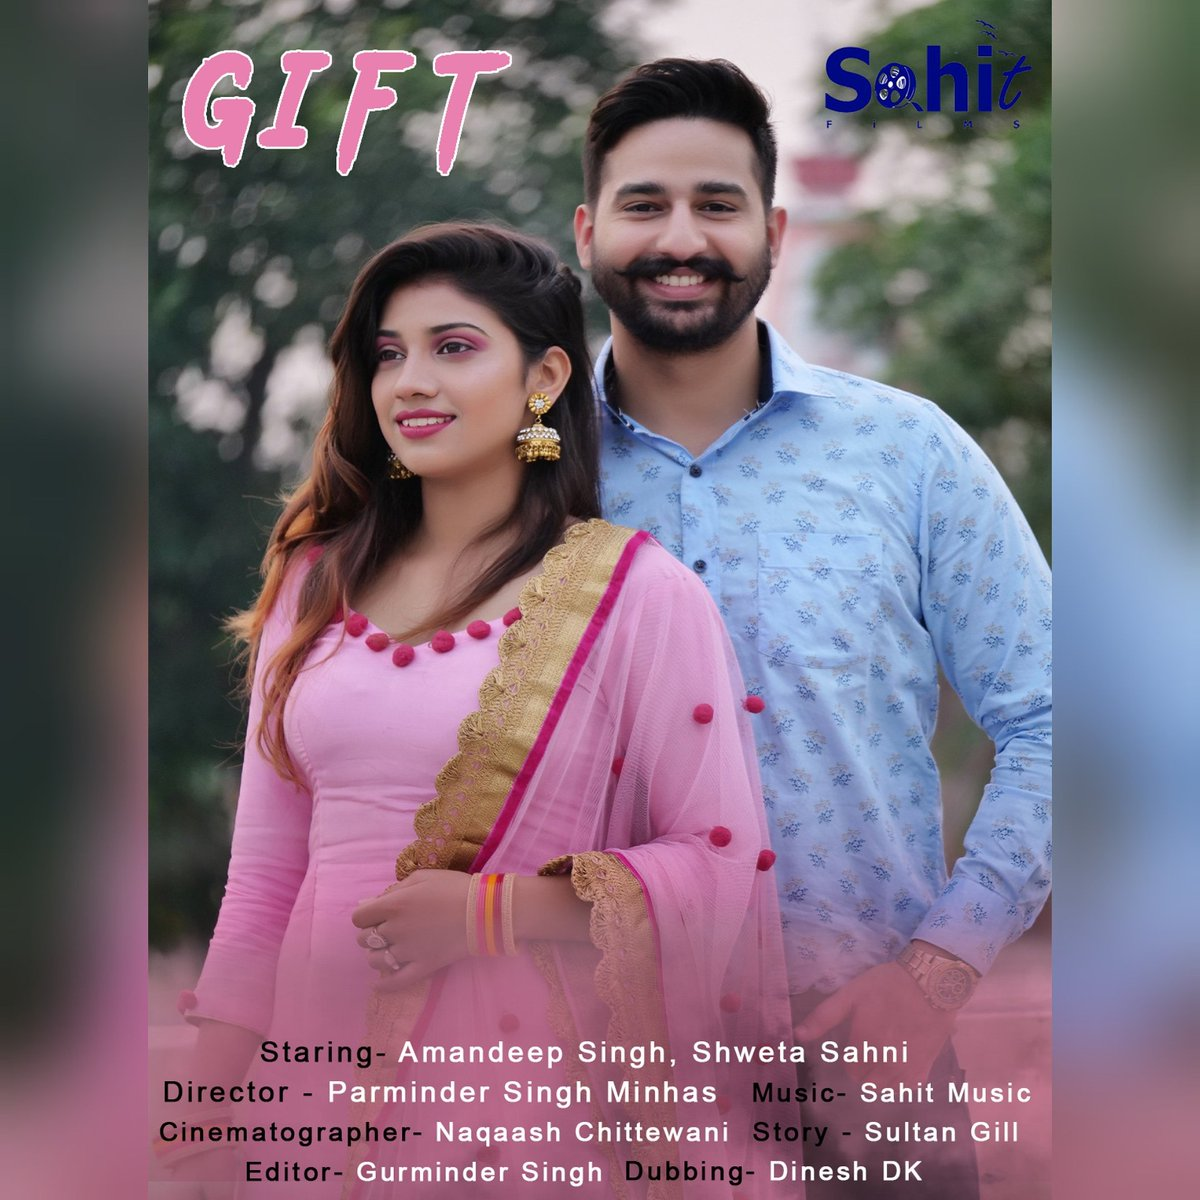 In life one day a #gift become so important which change life. Make you and you love one life so good  @sahitfilms #gift #sahitfilms #shortfilm #punjabi #poster #pollywood #sahitmusic @Minhasparminde1 @YouTubeIndia   #punjabimodels pic.twitter.com/w11VDNlAhj